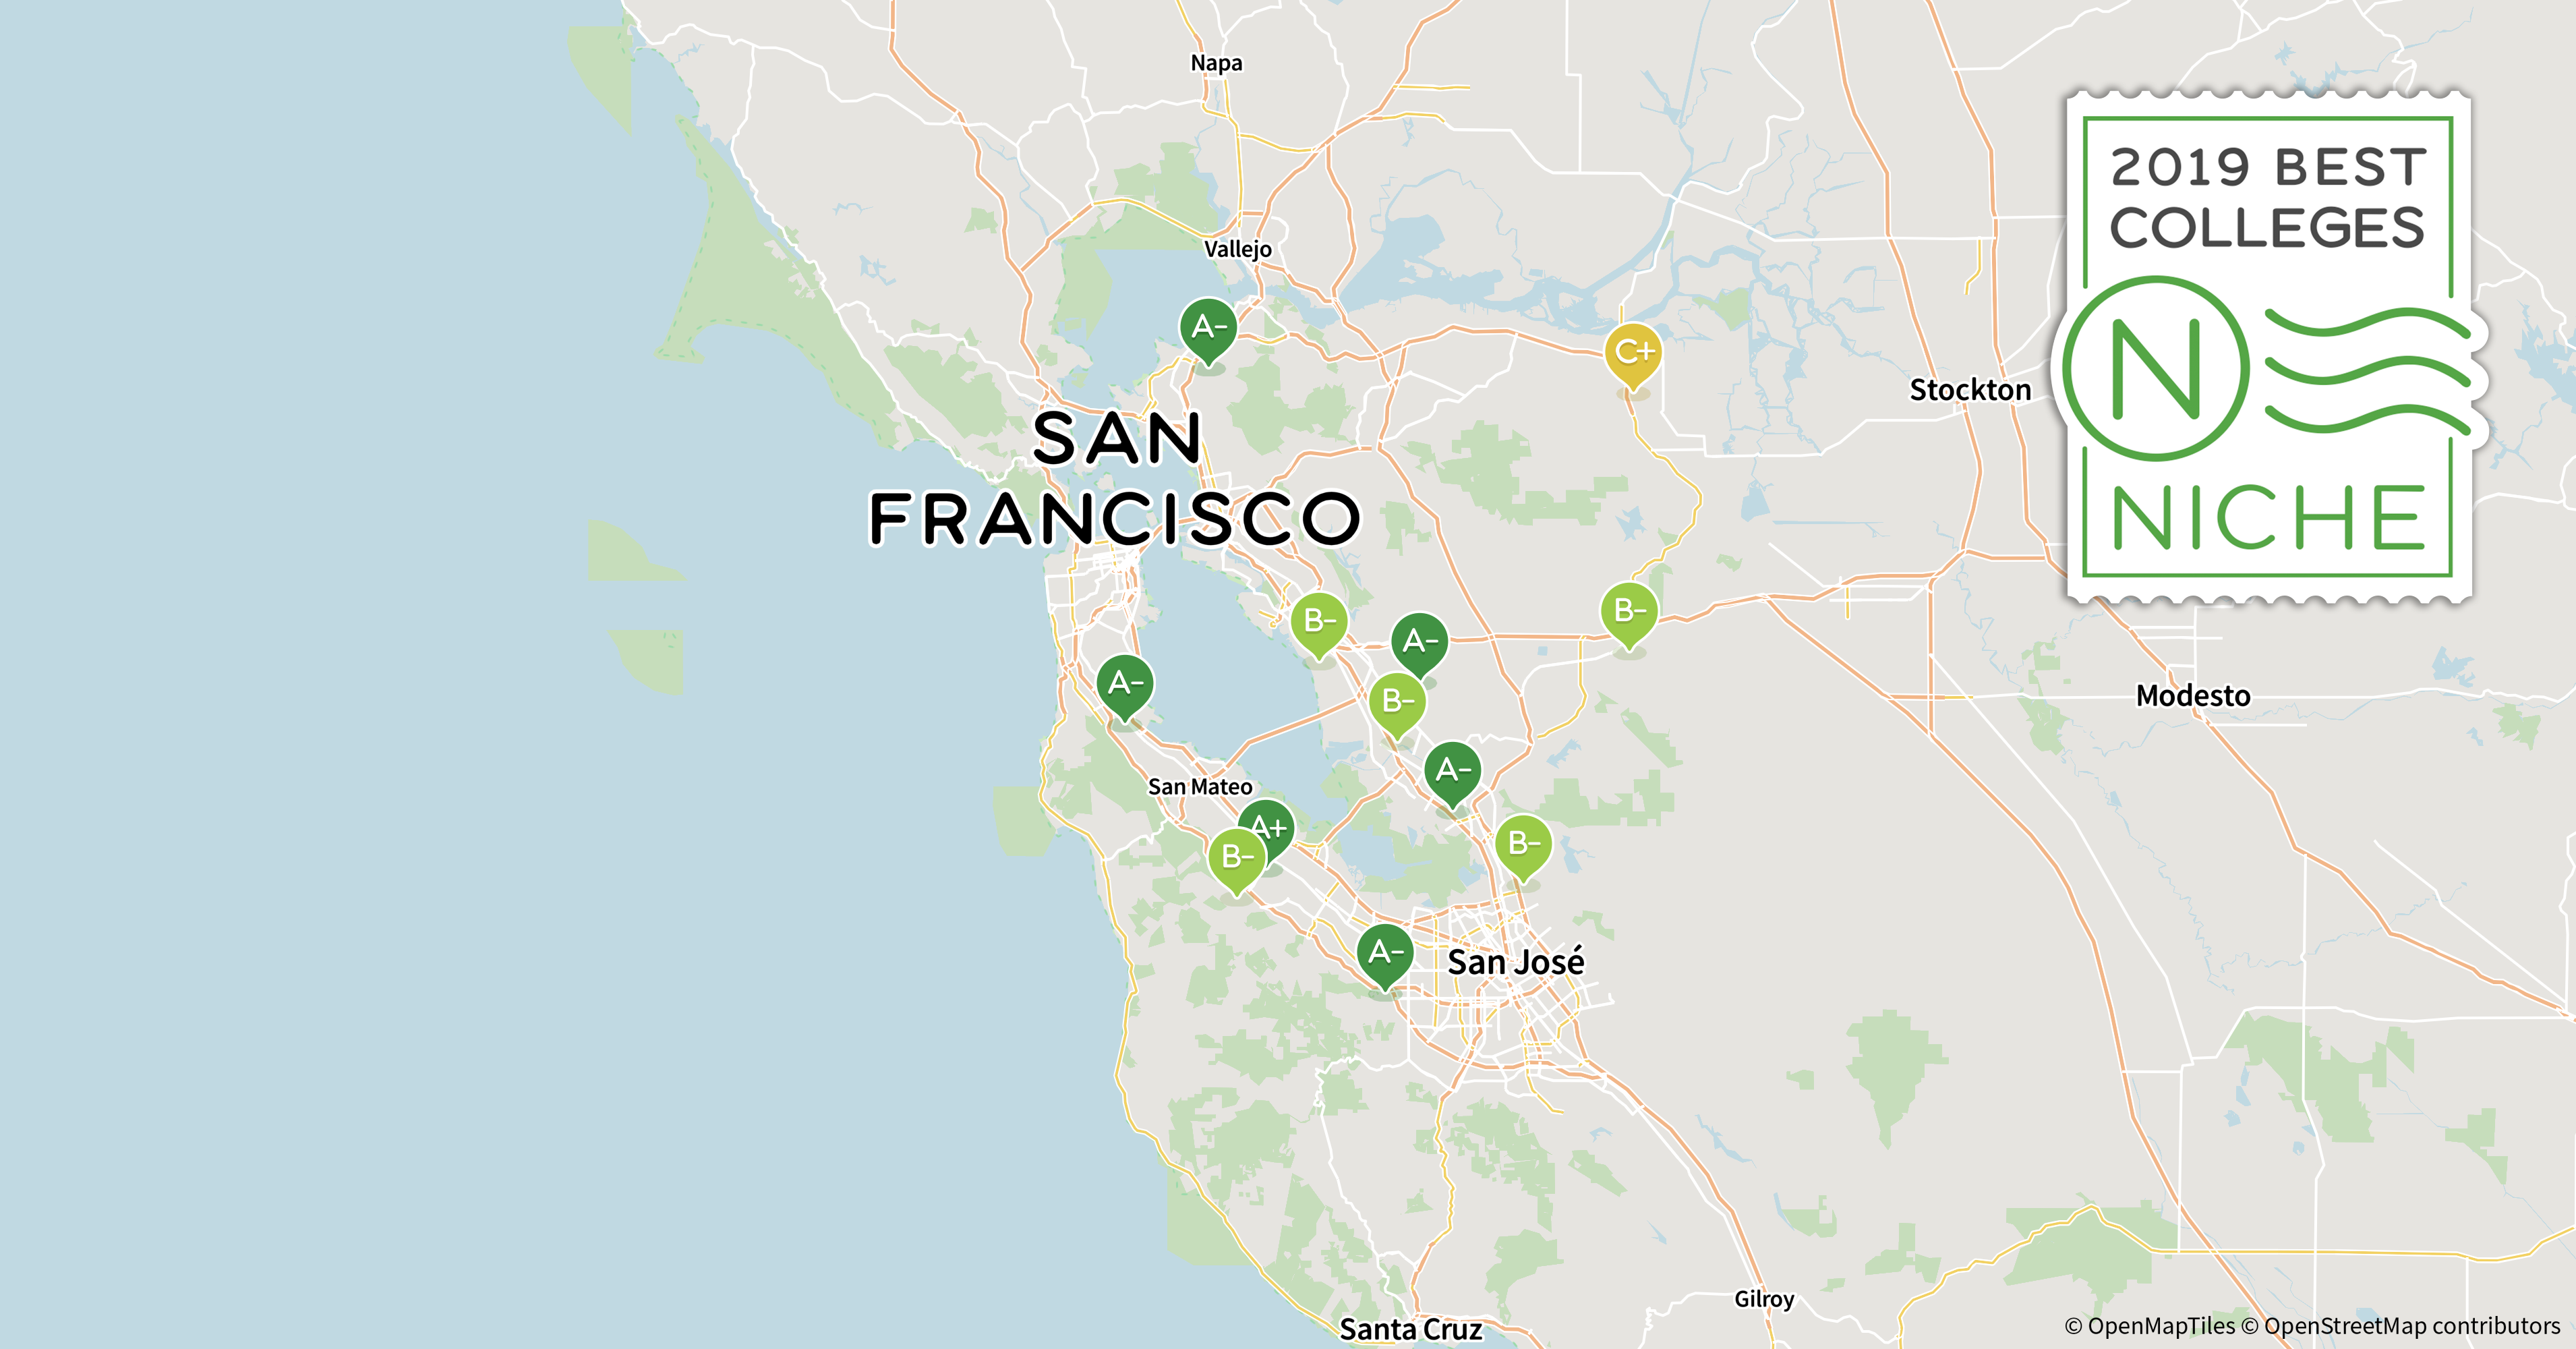 2019 Top Graduate Programs in the San Francisco Bay Area - Niche San Jose City College Map on sac city college campus map, downtown san jose map, tustin high school map, san jose unified school district map, san jose state university map, simpson university map, cadence san jose campus map, san jose traffic map, la city college campus map, emma prusch farm park map, city college of san francisco map, colleges in utah map, blossom valley map, east san jose map, san jose mcenery convention center map, grove city college campus map, evergreen college map, mt. san jacinto college map, san jose zip map,